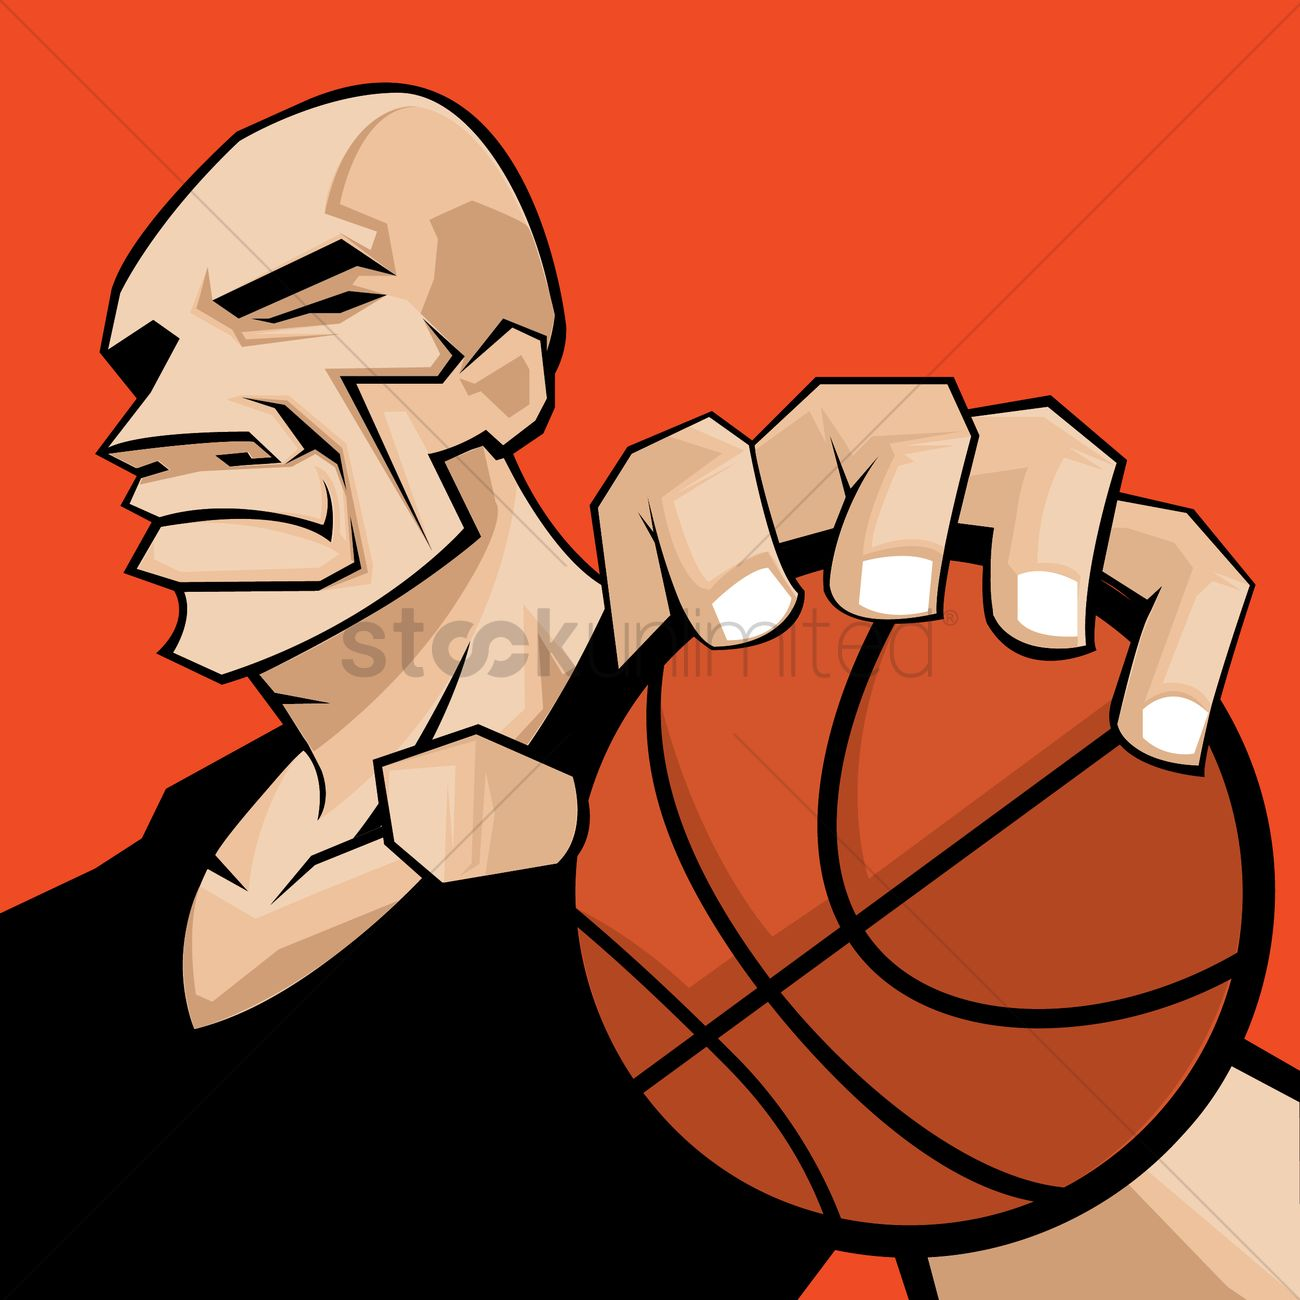 man holding basketball vector image 1275225 stockunlimited